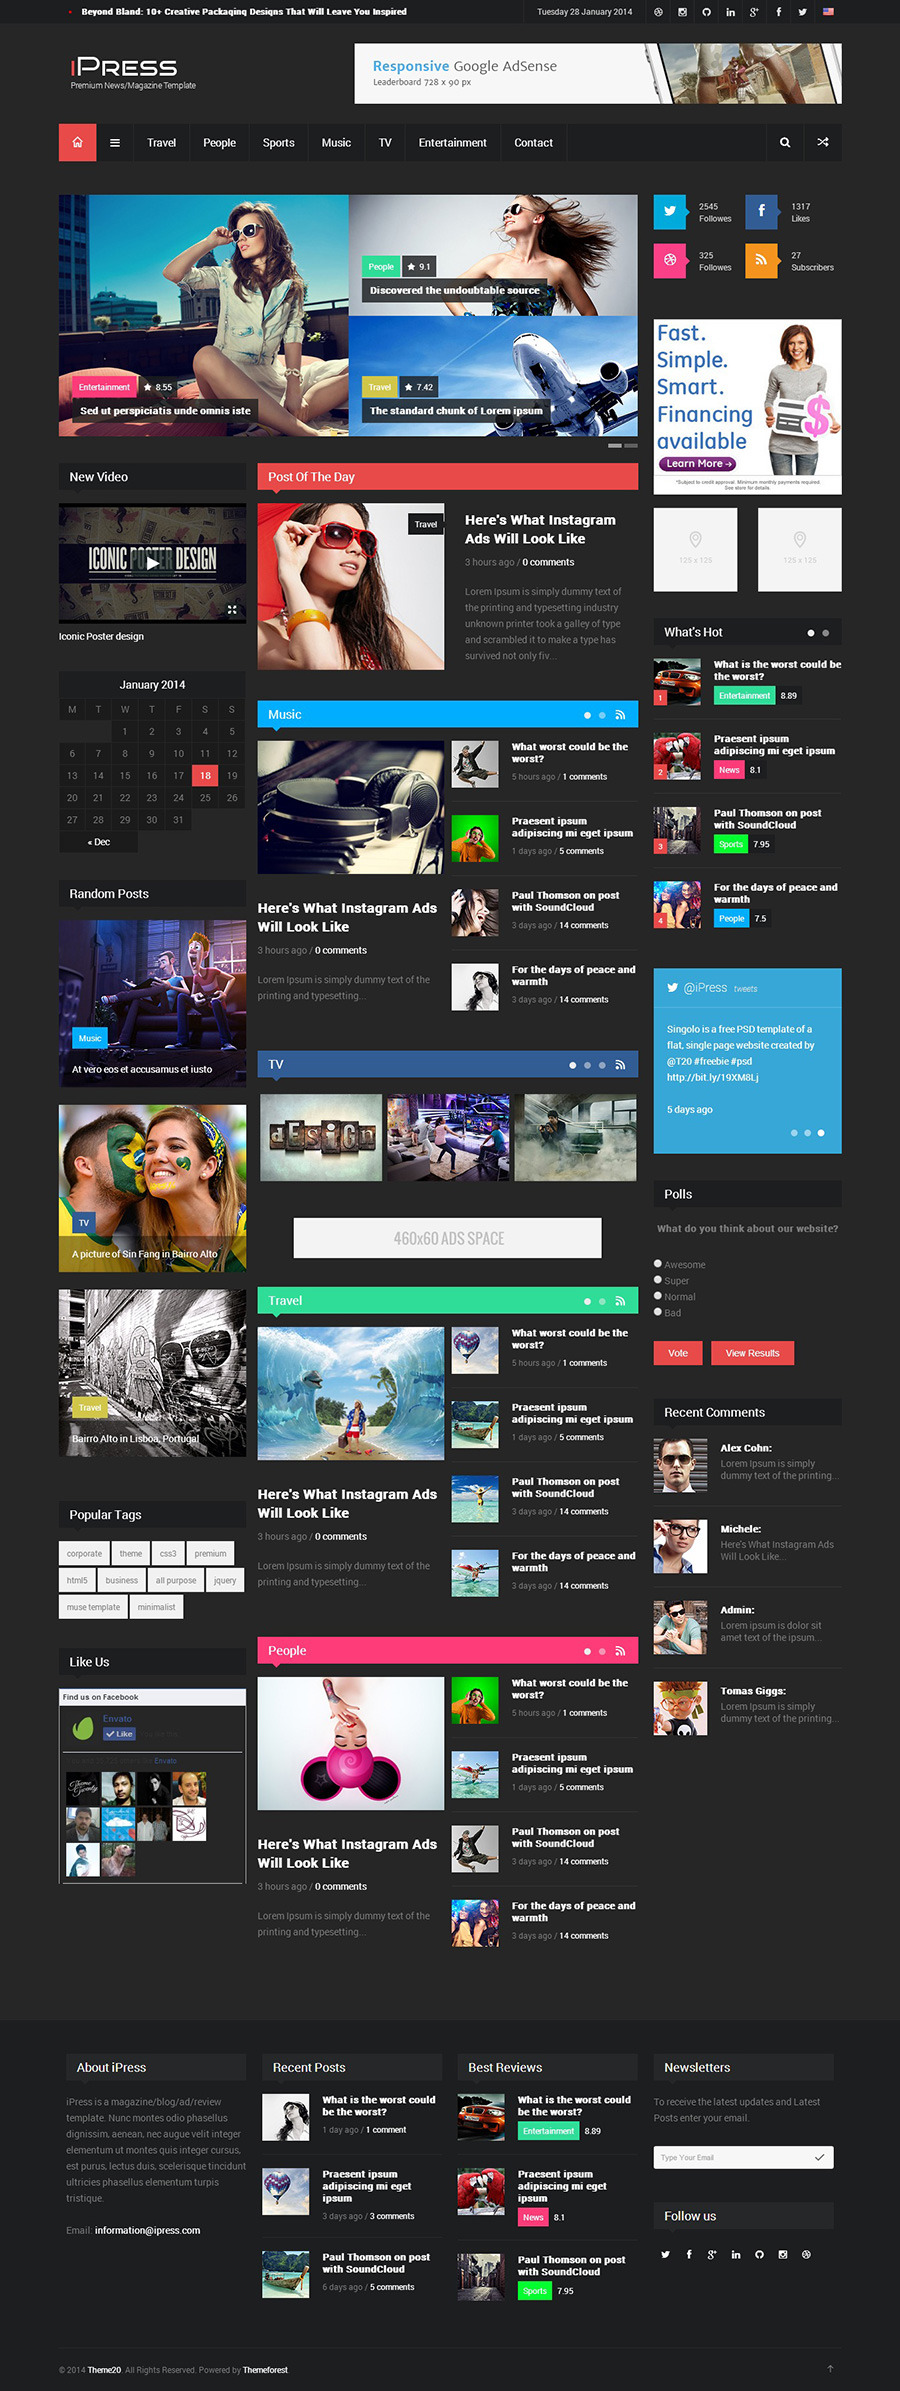 iPress Blog - Magazine Blog by Codevz | ThemeForest